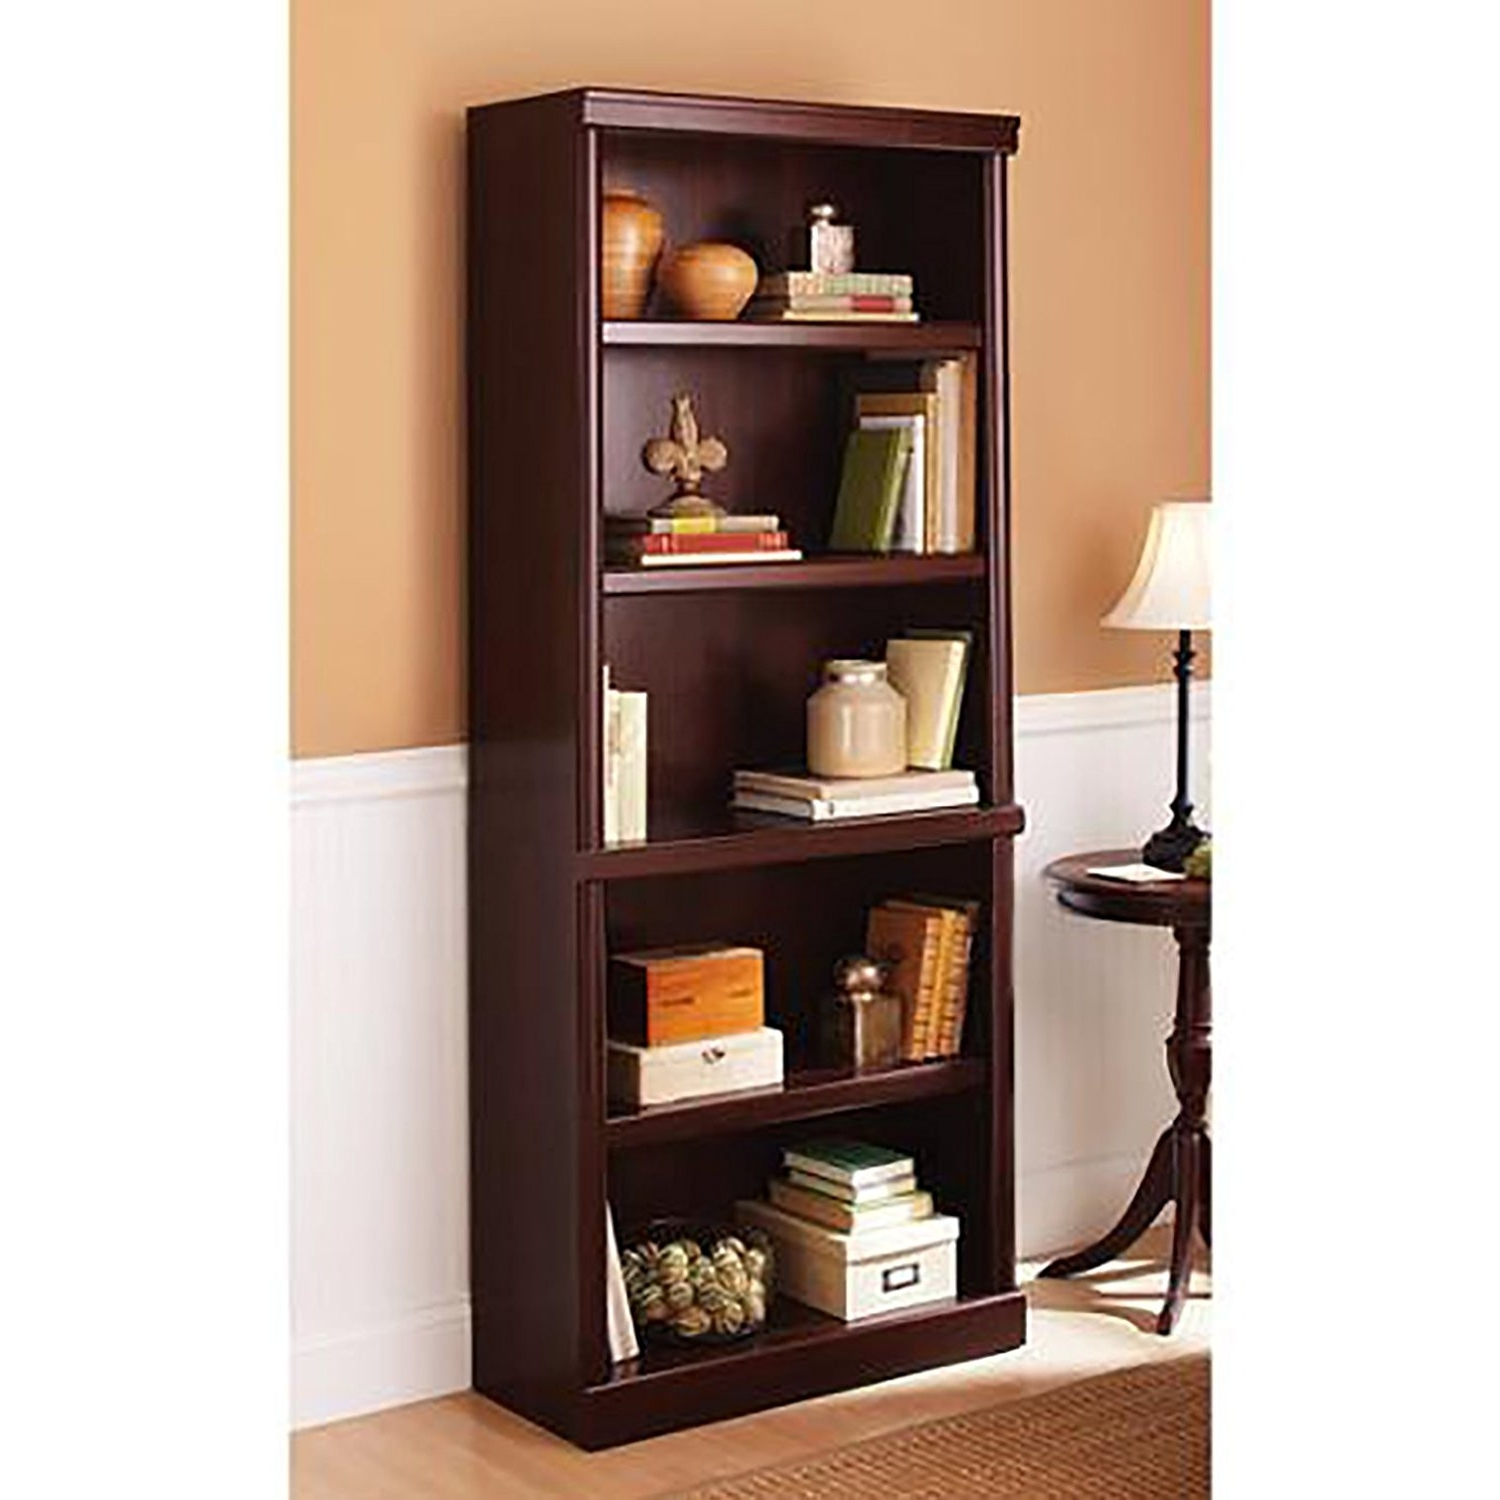 Amazon: 5 Shelf Cherry Bookcase Wooden Book Case Storage In Latest Wooden Bookshelves (View 2 of 15)